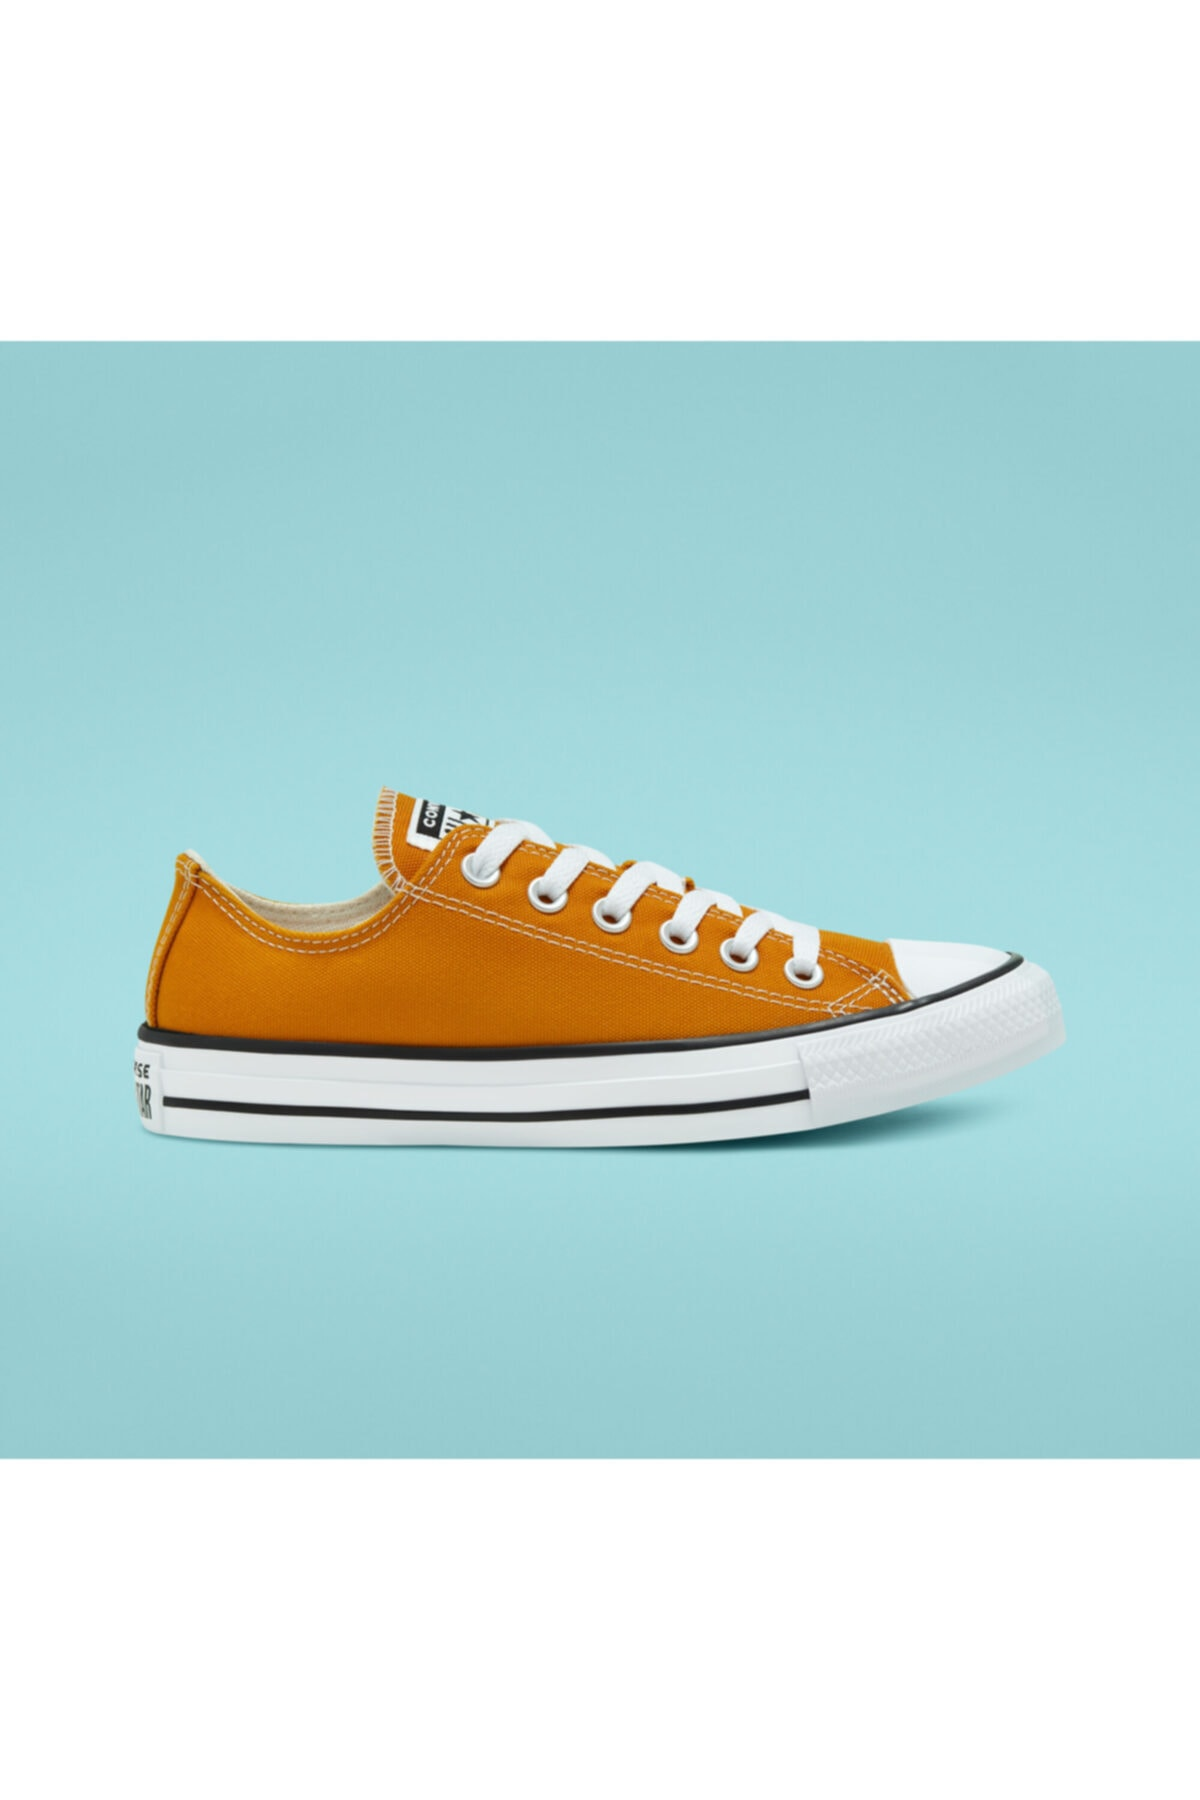 converse Unisex Colors Chuck Taylor All Star 1